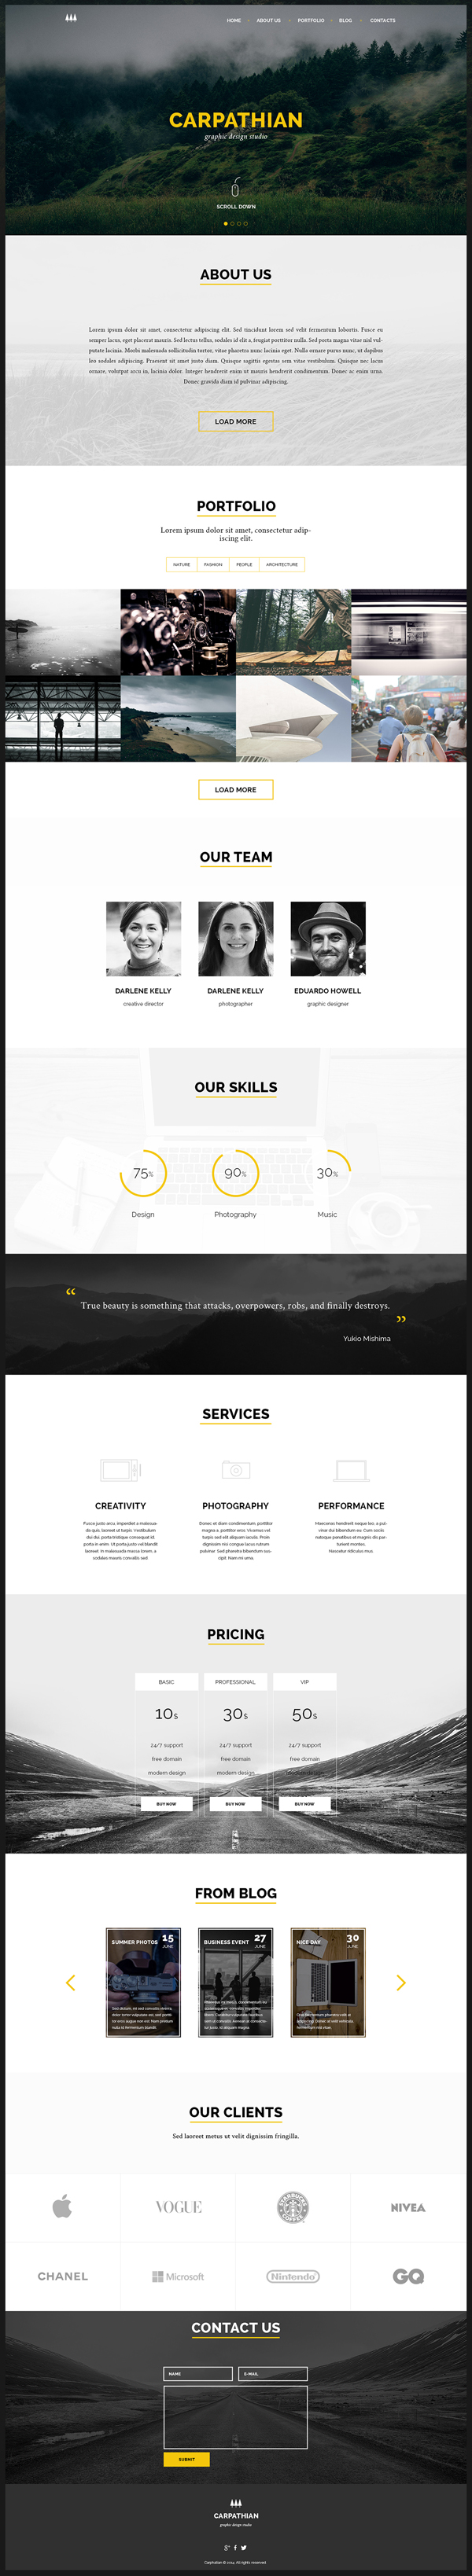 contact us template free download - free psd files download 25 ui design photoshop psd